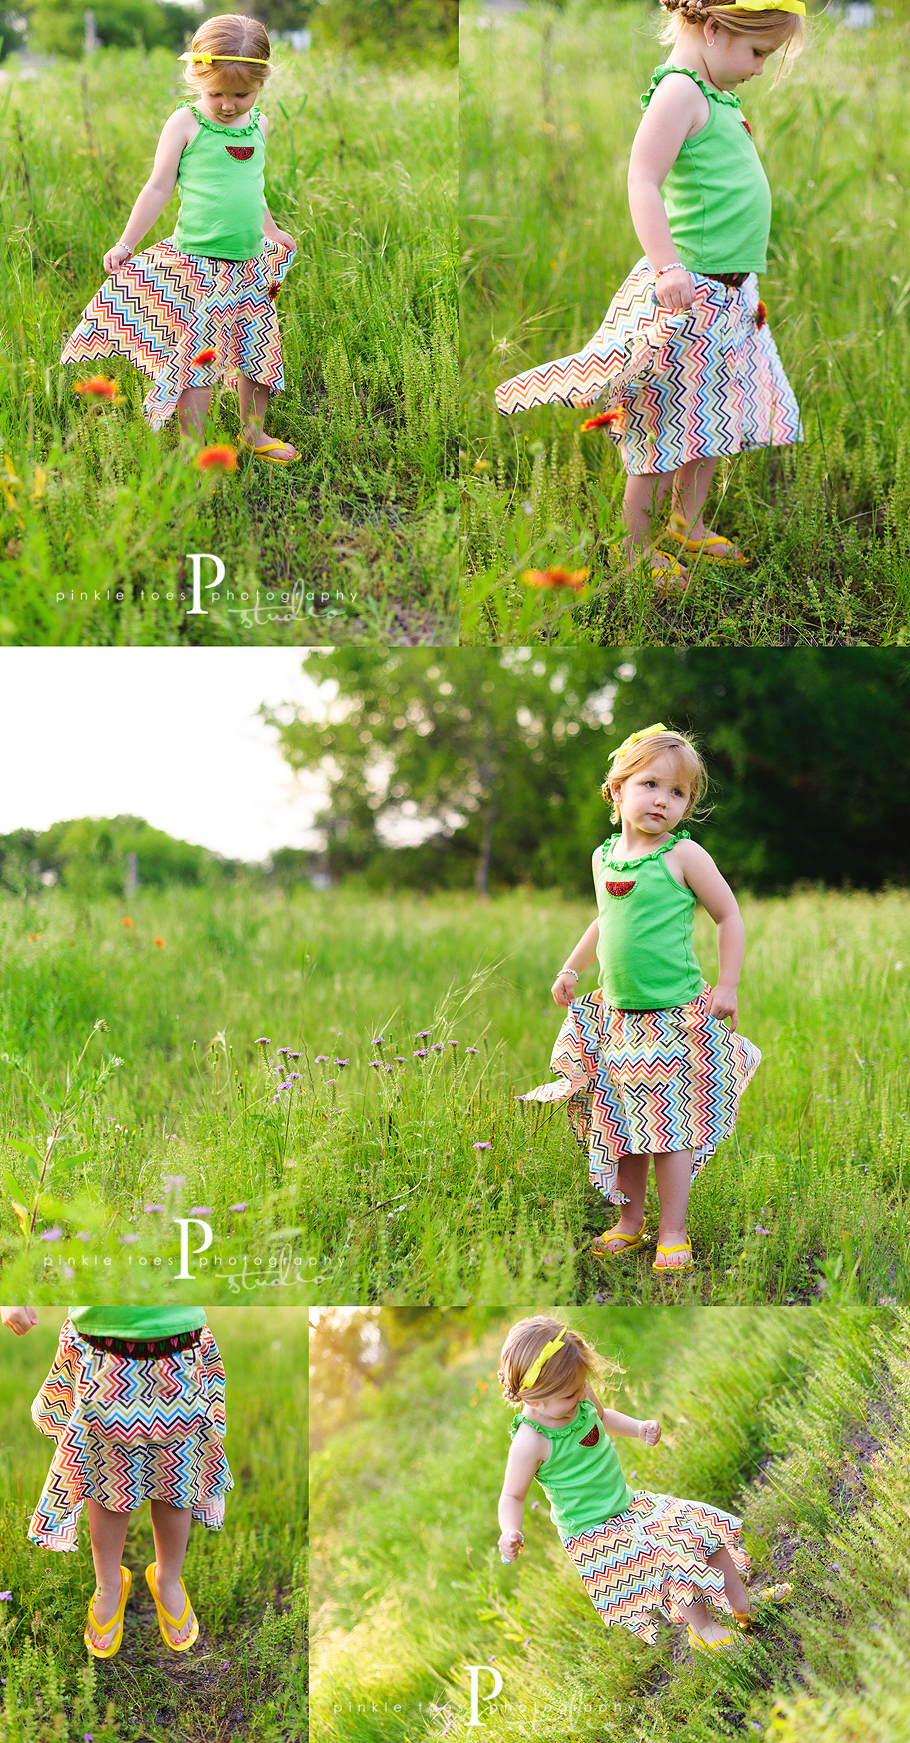 etsy-austin-commercial-kids-photographer.jpg